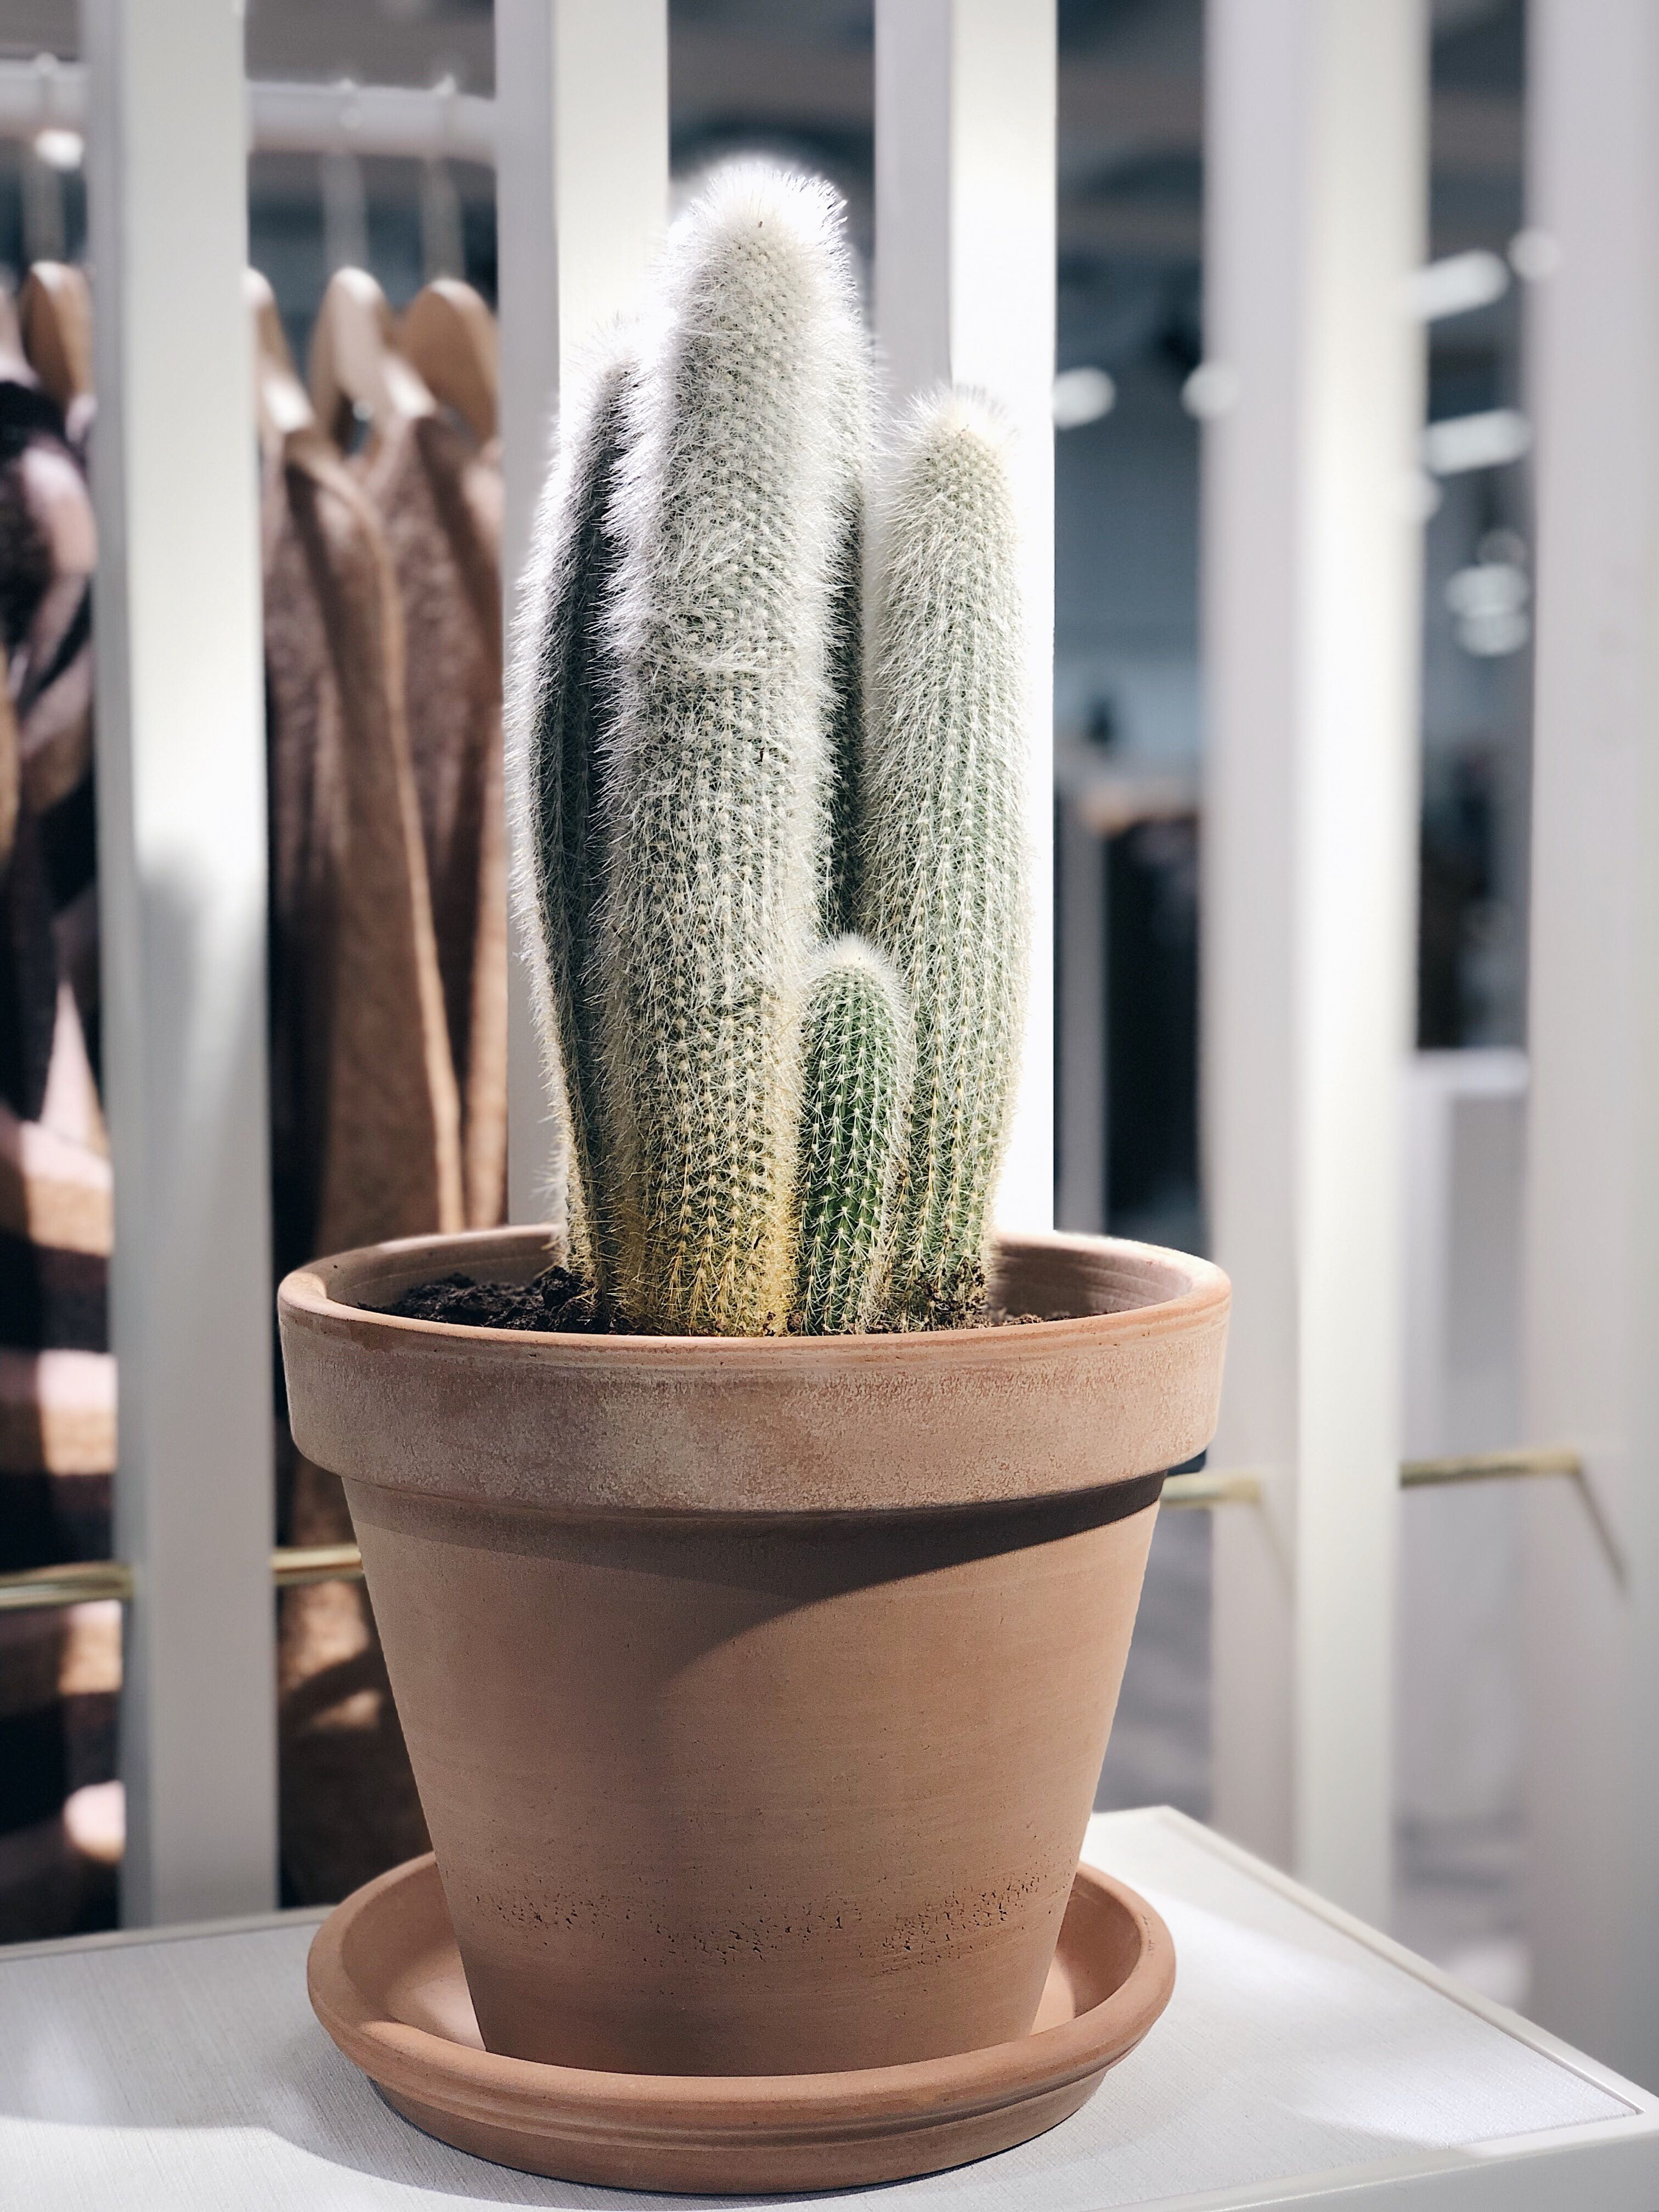 cactus interieurtrend